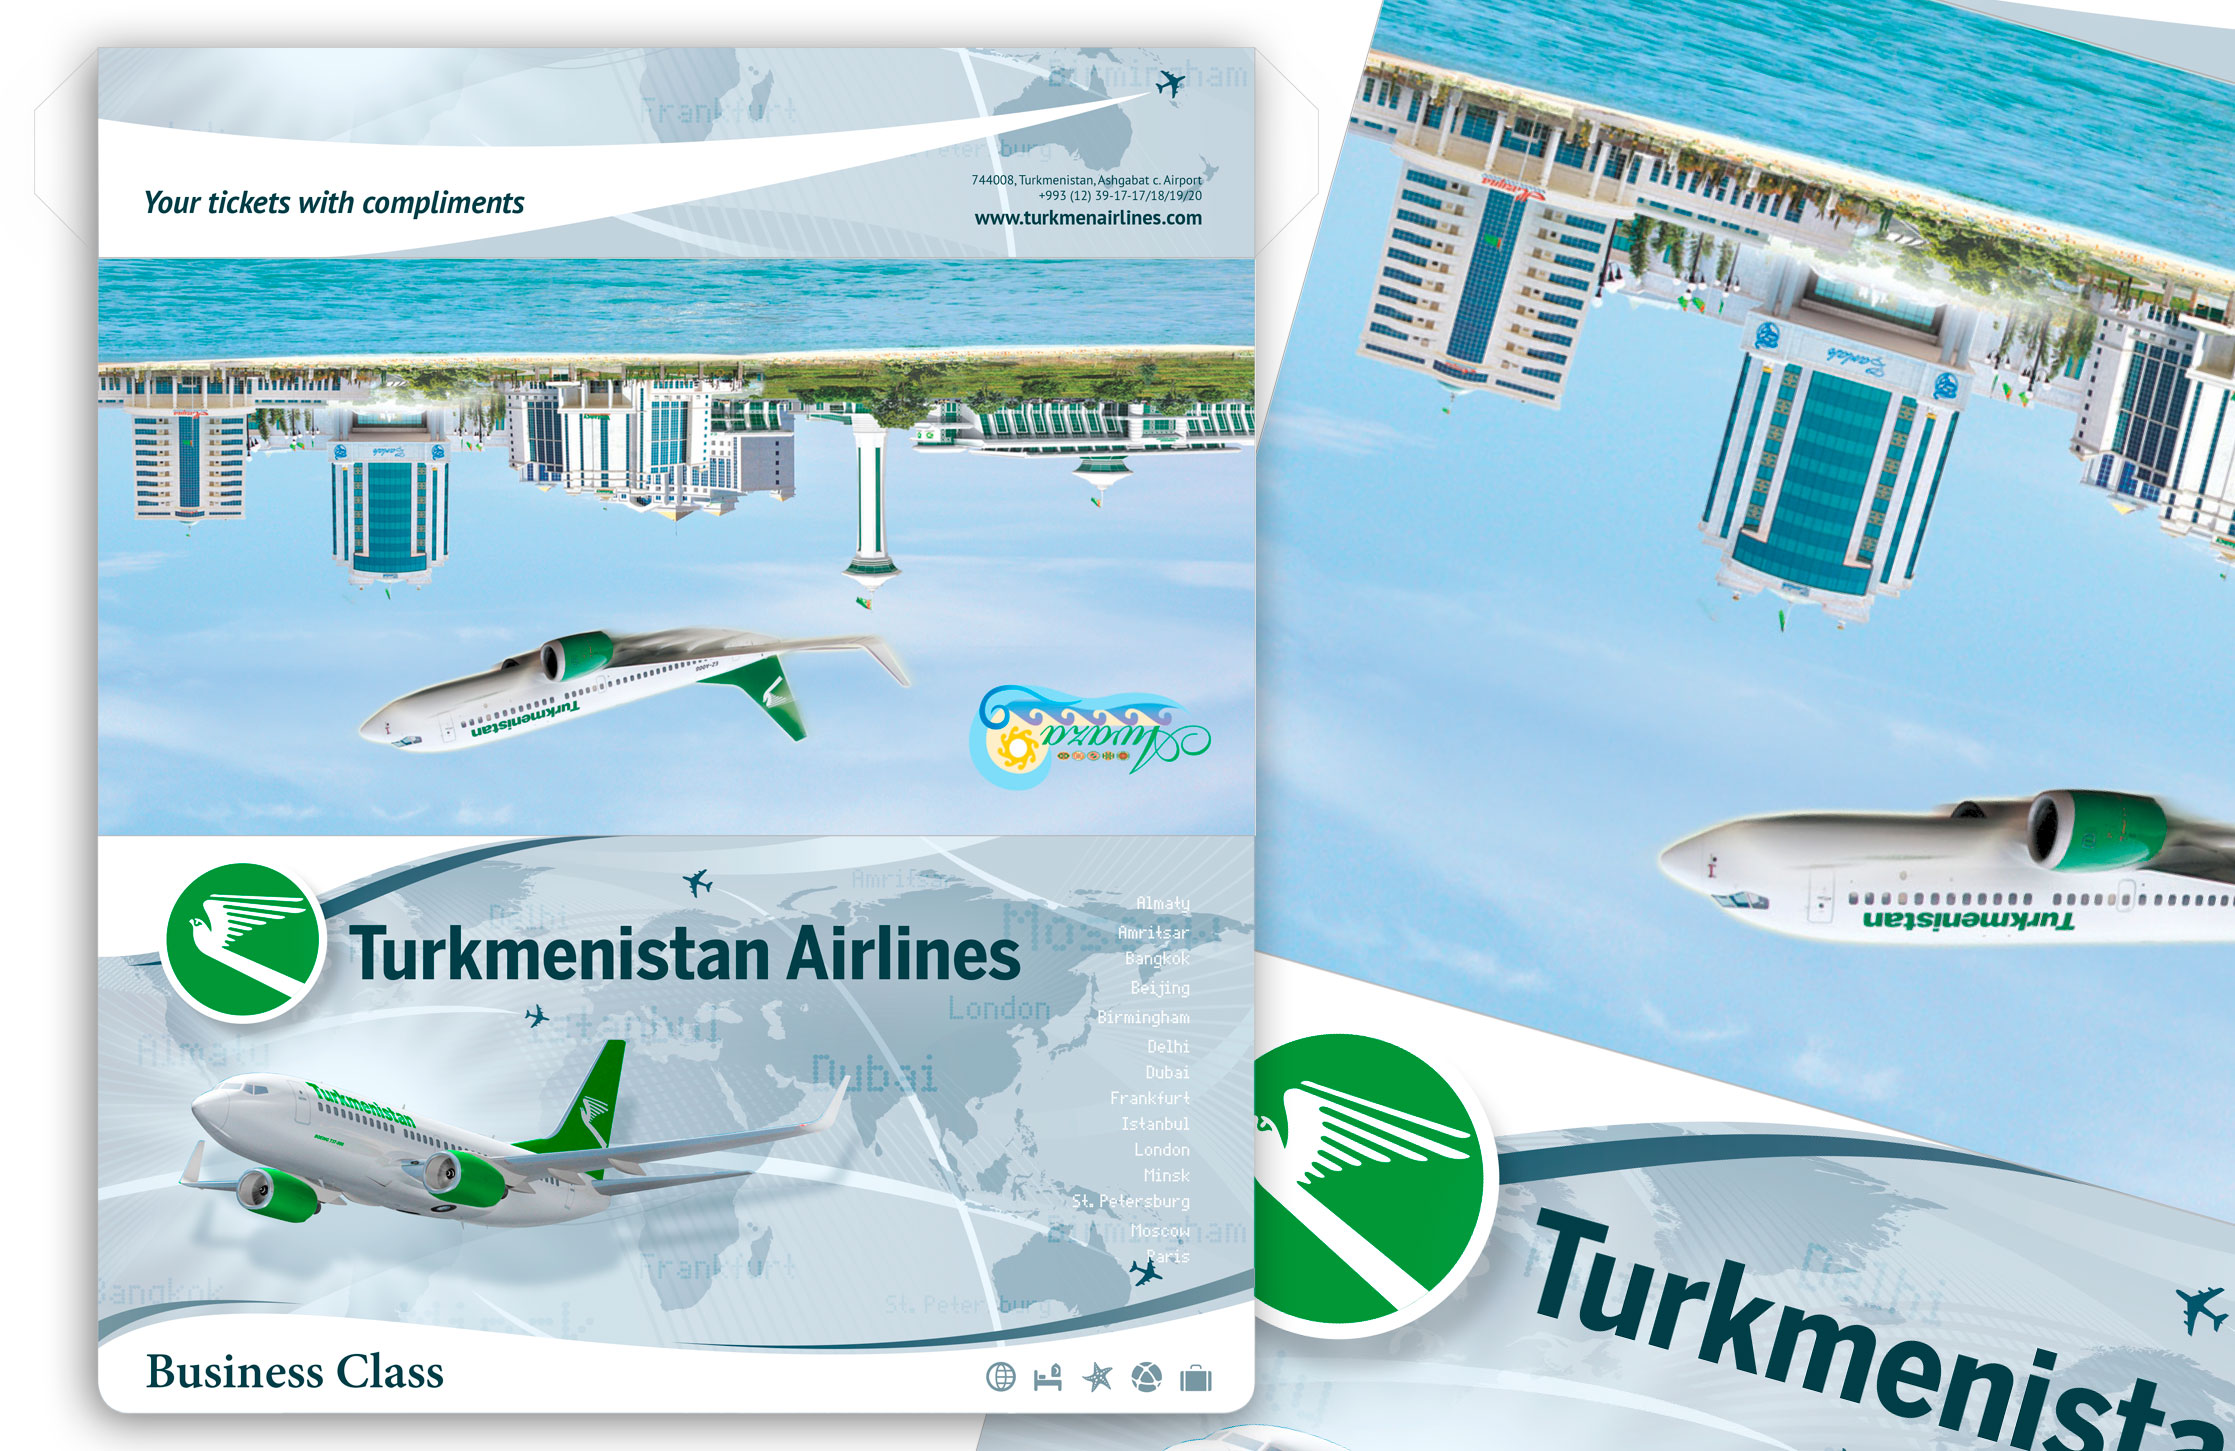 Turkmenistan Airlines Ticket Wallet